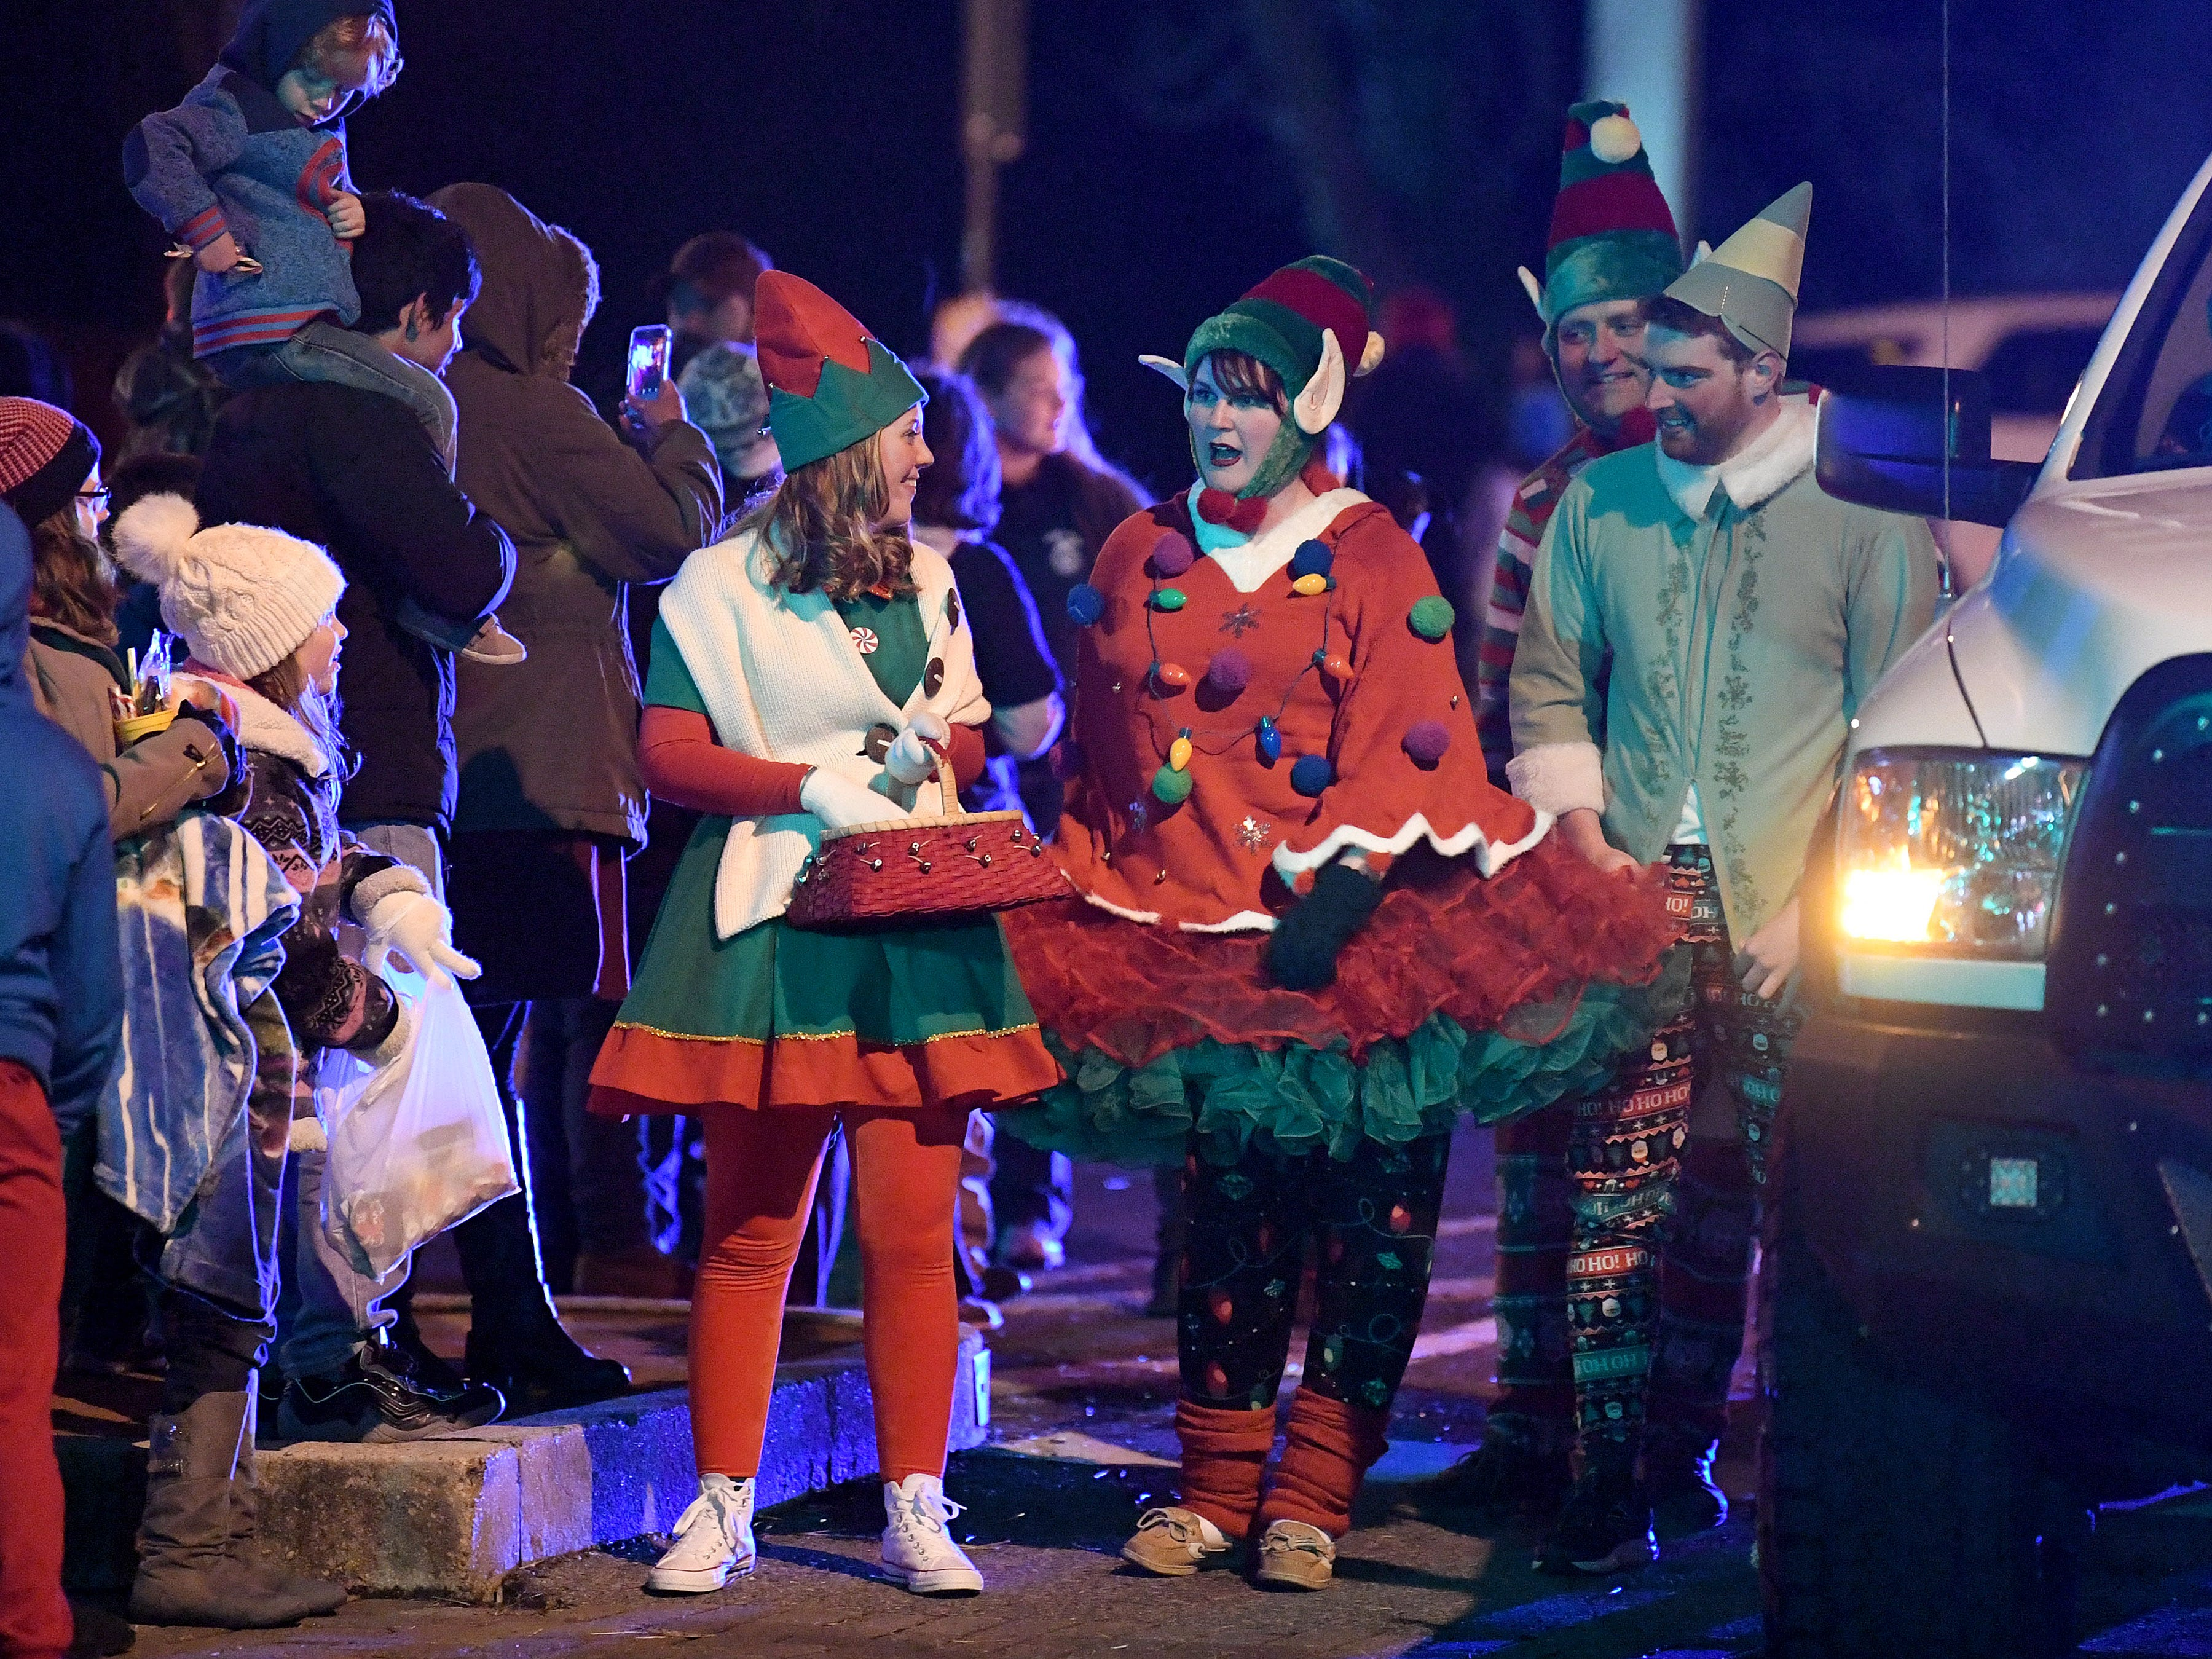 One of the elves (middle) walking alongside Santa's float starts performing the floss dance during the Staunton Christmas Parade makes its way through downtown on Monday, Nov. 26, 2018.